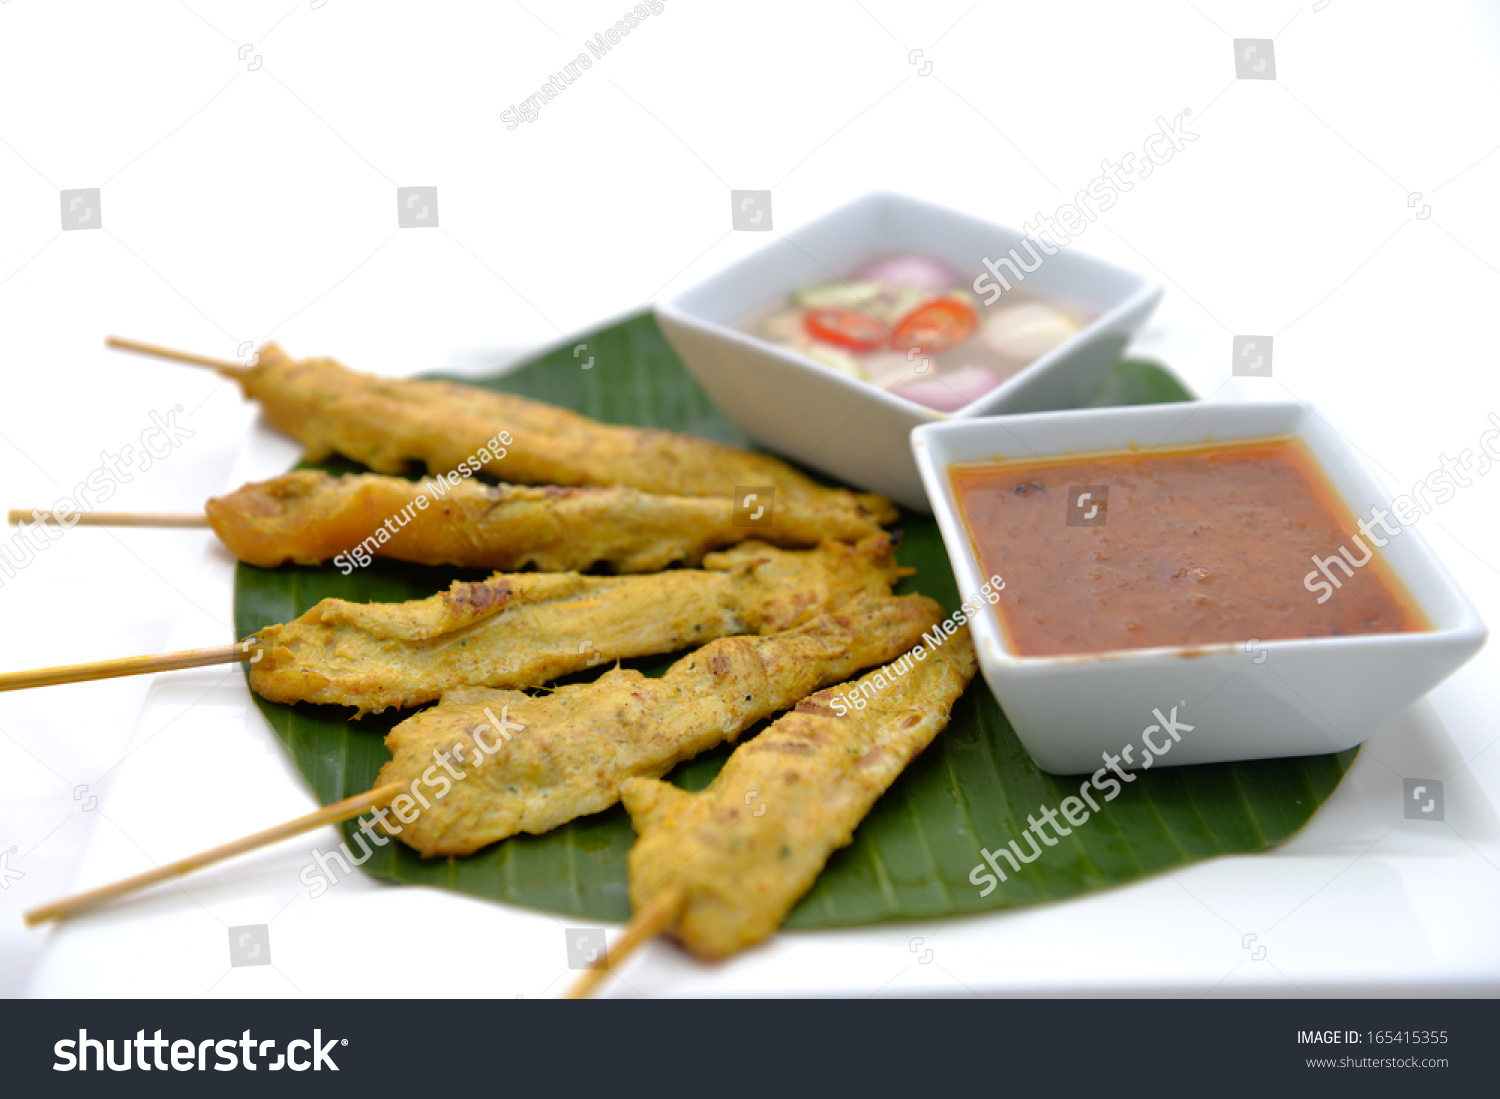 Grilled Pork Satay With Peanut Sauce And Vinegar Stock Photo 165415355 ...